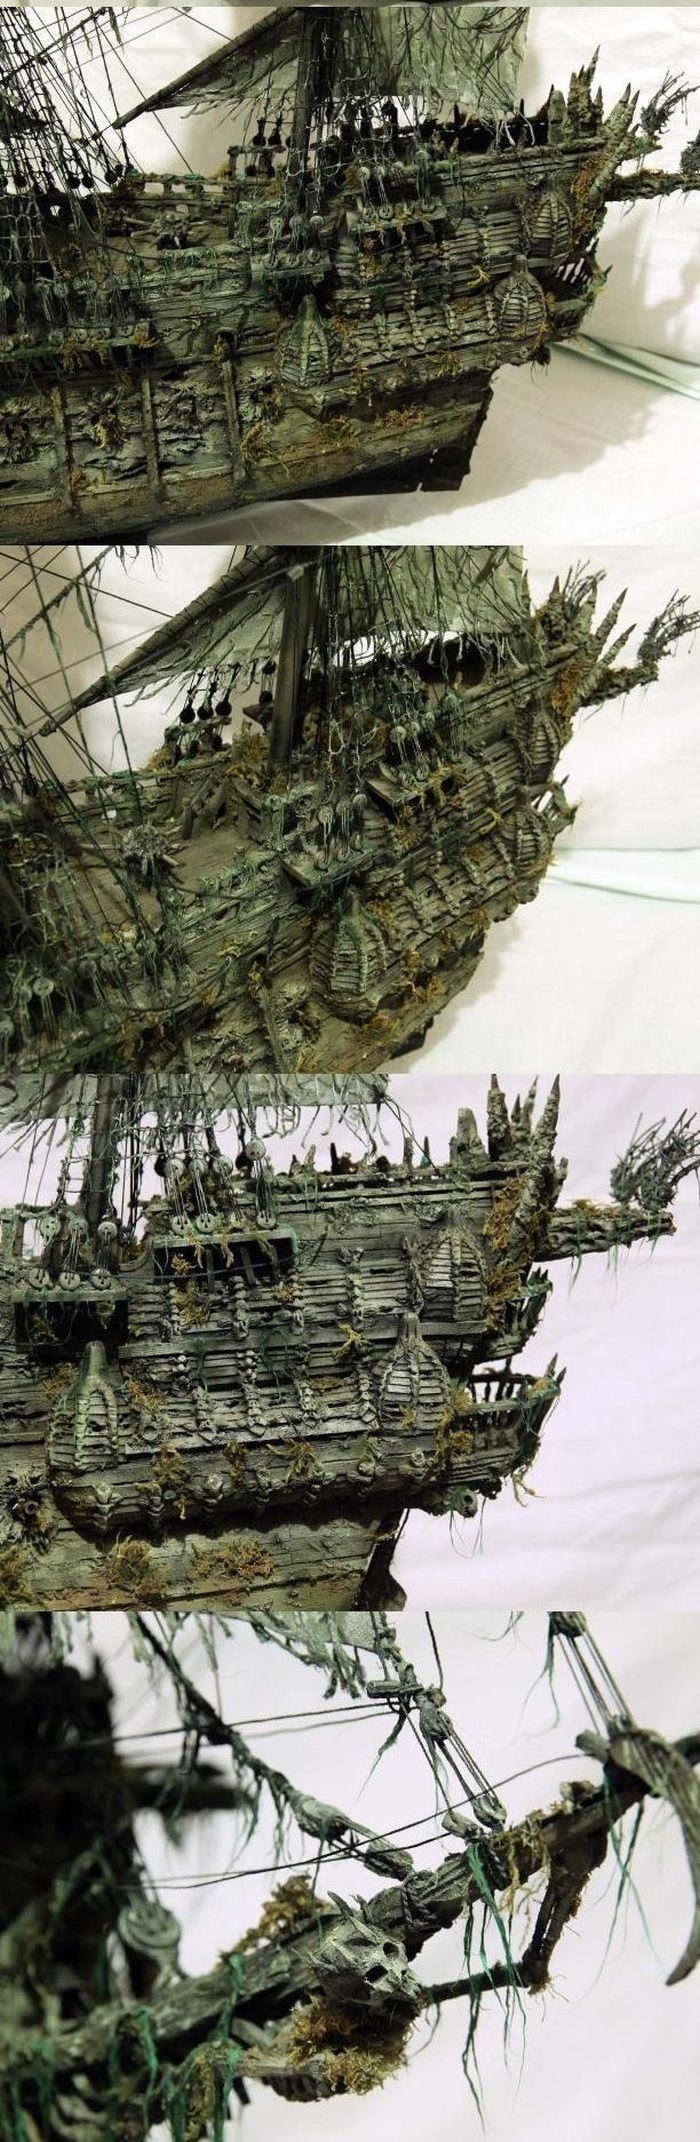 The Flying Dutchman Model